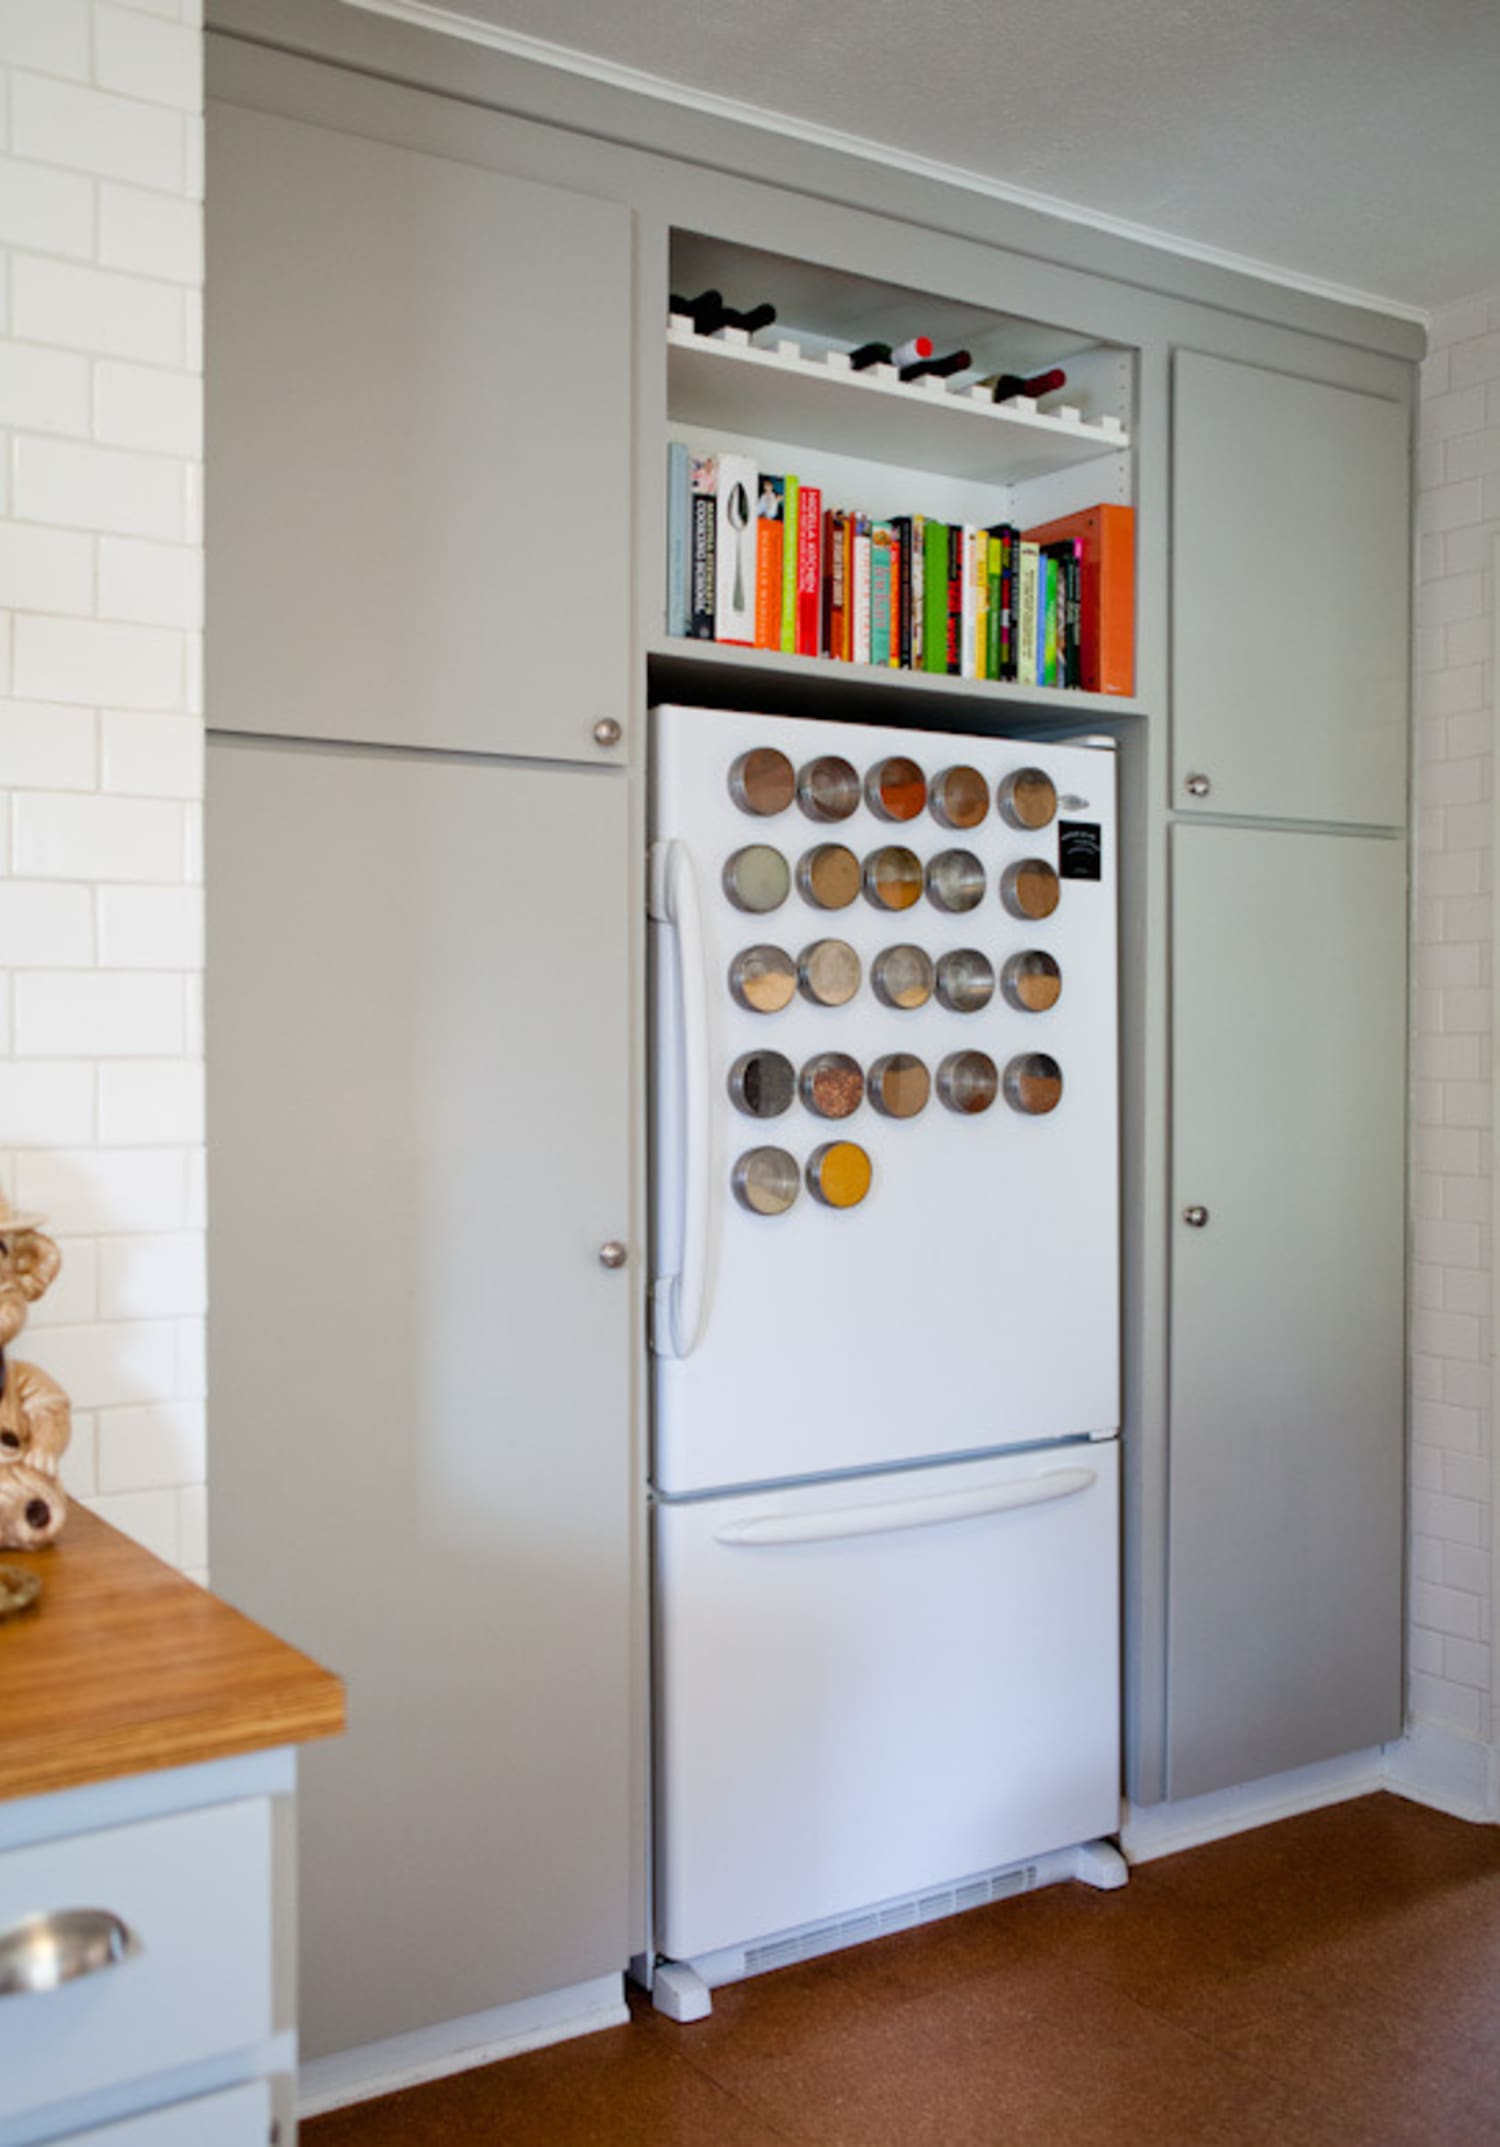 26ef98a2df 10 Magnetic Products that Will Make Life in the Kitchen (Especially a Small  One) Easier. by Carrie McBride. Magnetic spice racks on a refrigerator ...